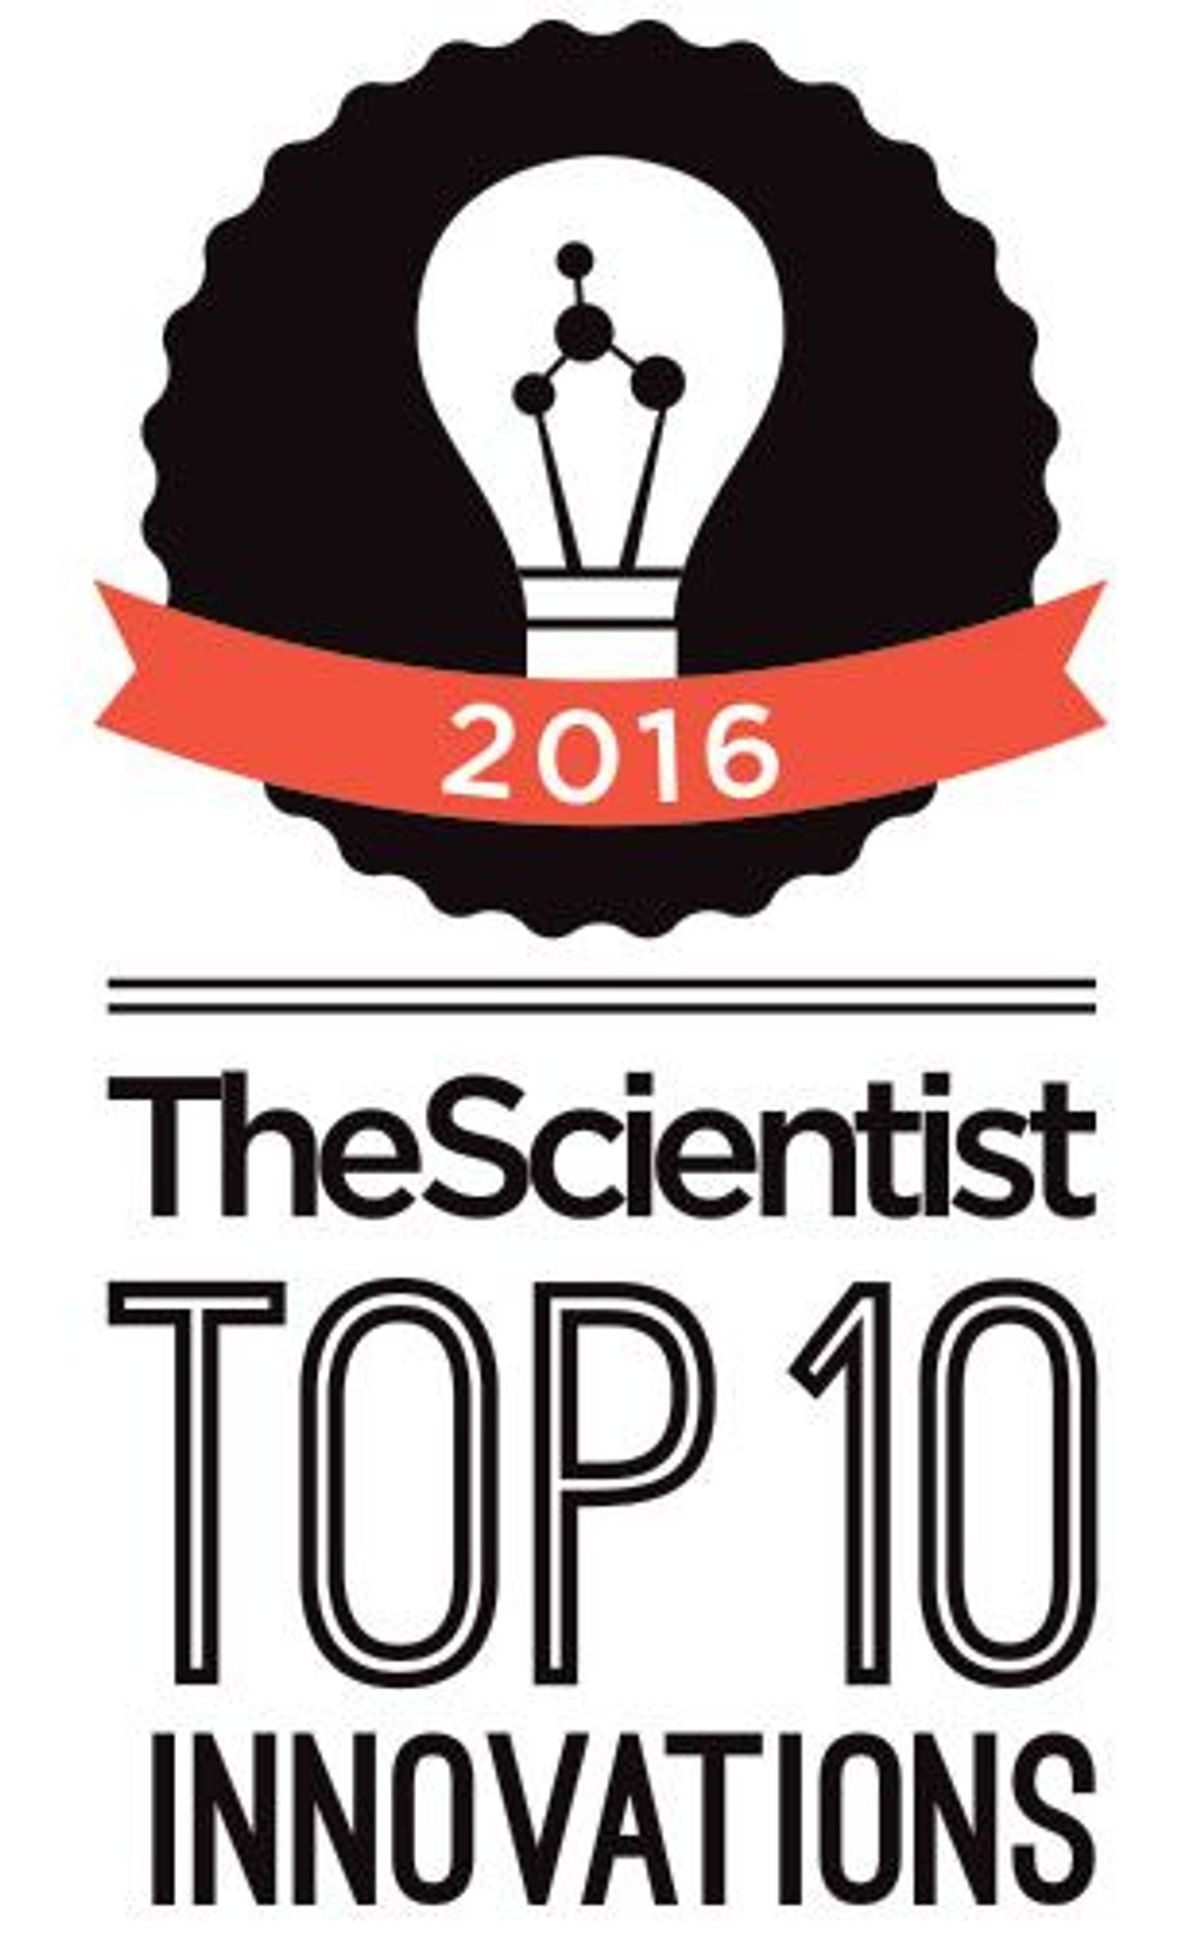 Top 10 Innovations 2016 | The Scientist Magazine®